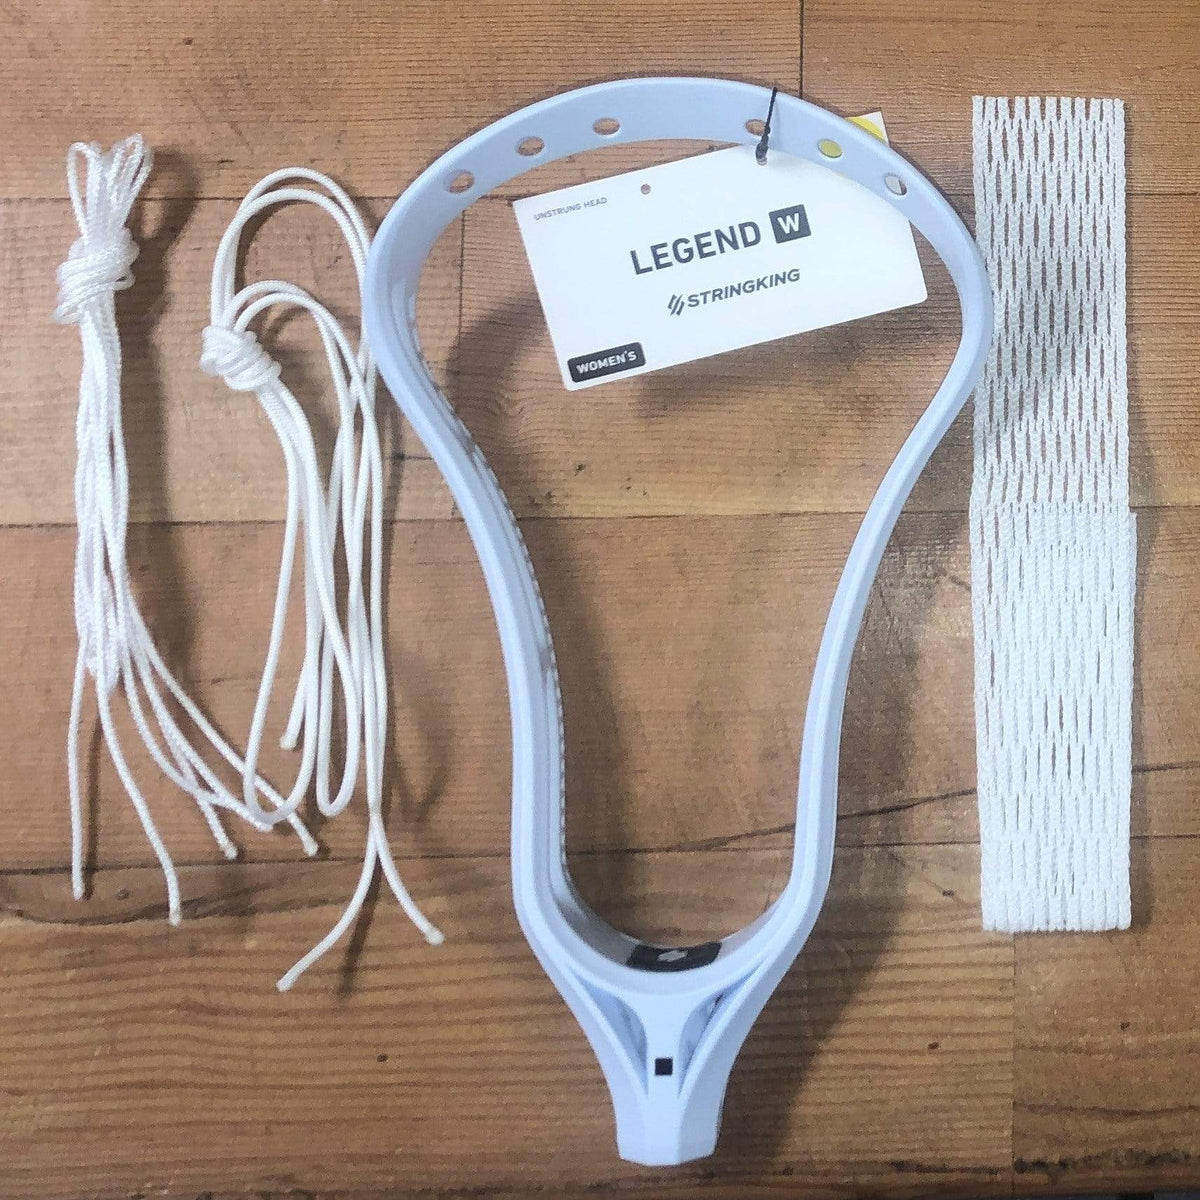 Womens DIY Stringing Kit with StringKing Legend W Head